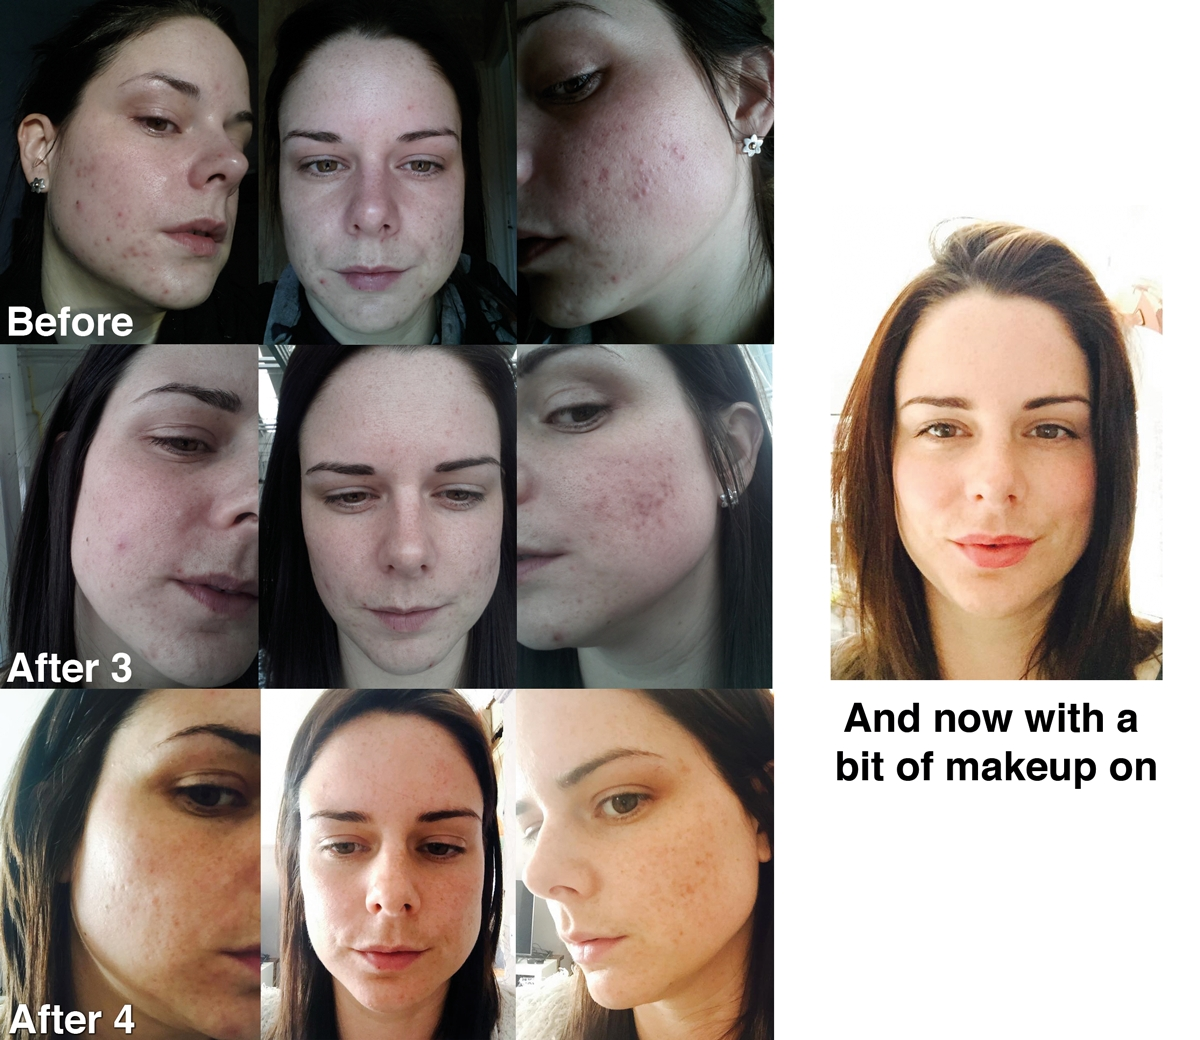 IPL Laser Treatment For Acne scarring